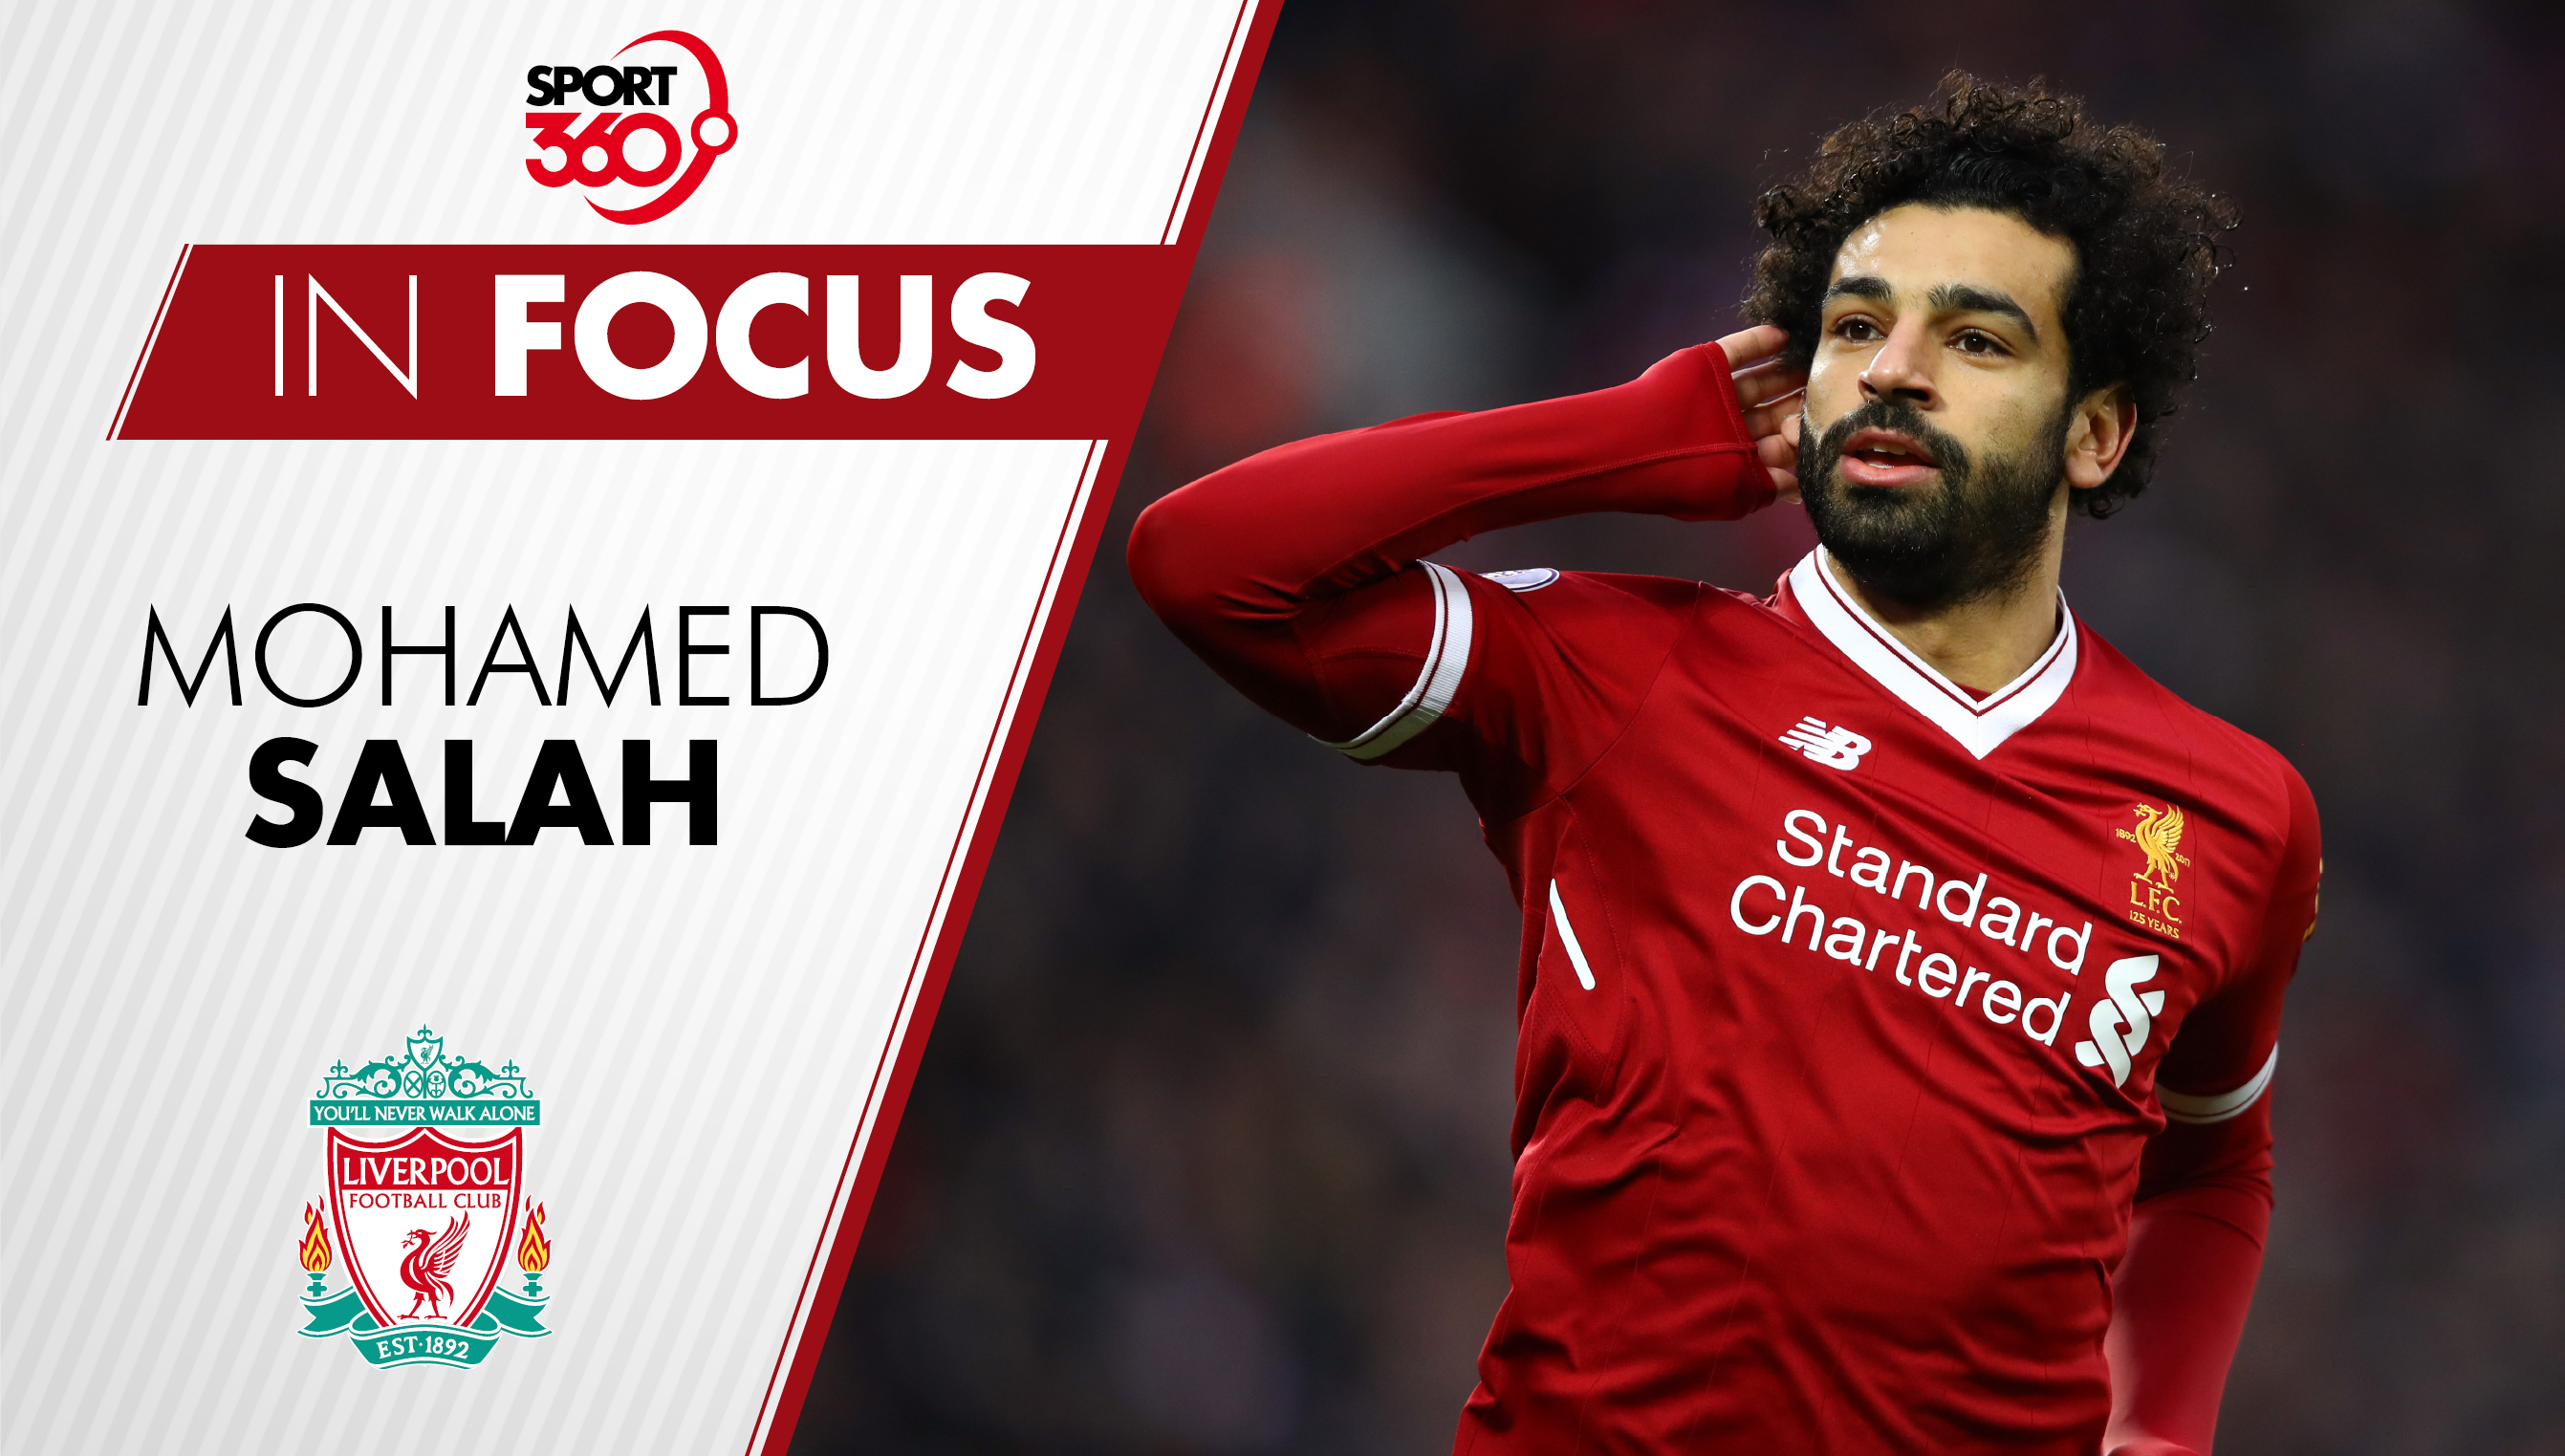 Mohamed Salah analysis as he shines for Liverpool in 2-2 draw against Tottenham - Article - Sport360